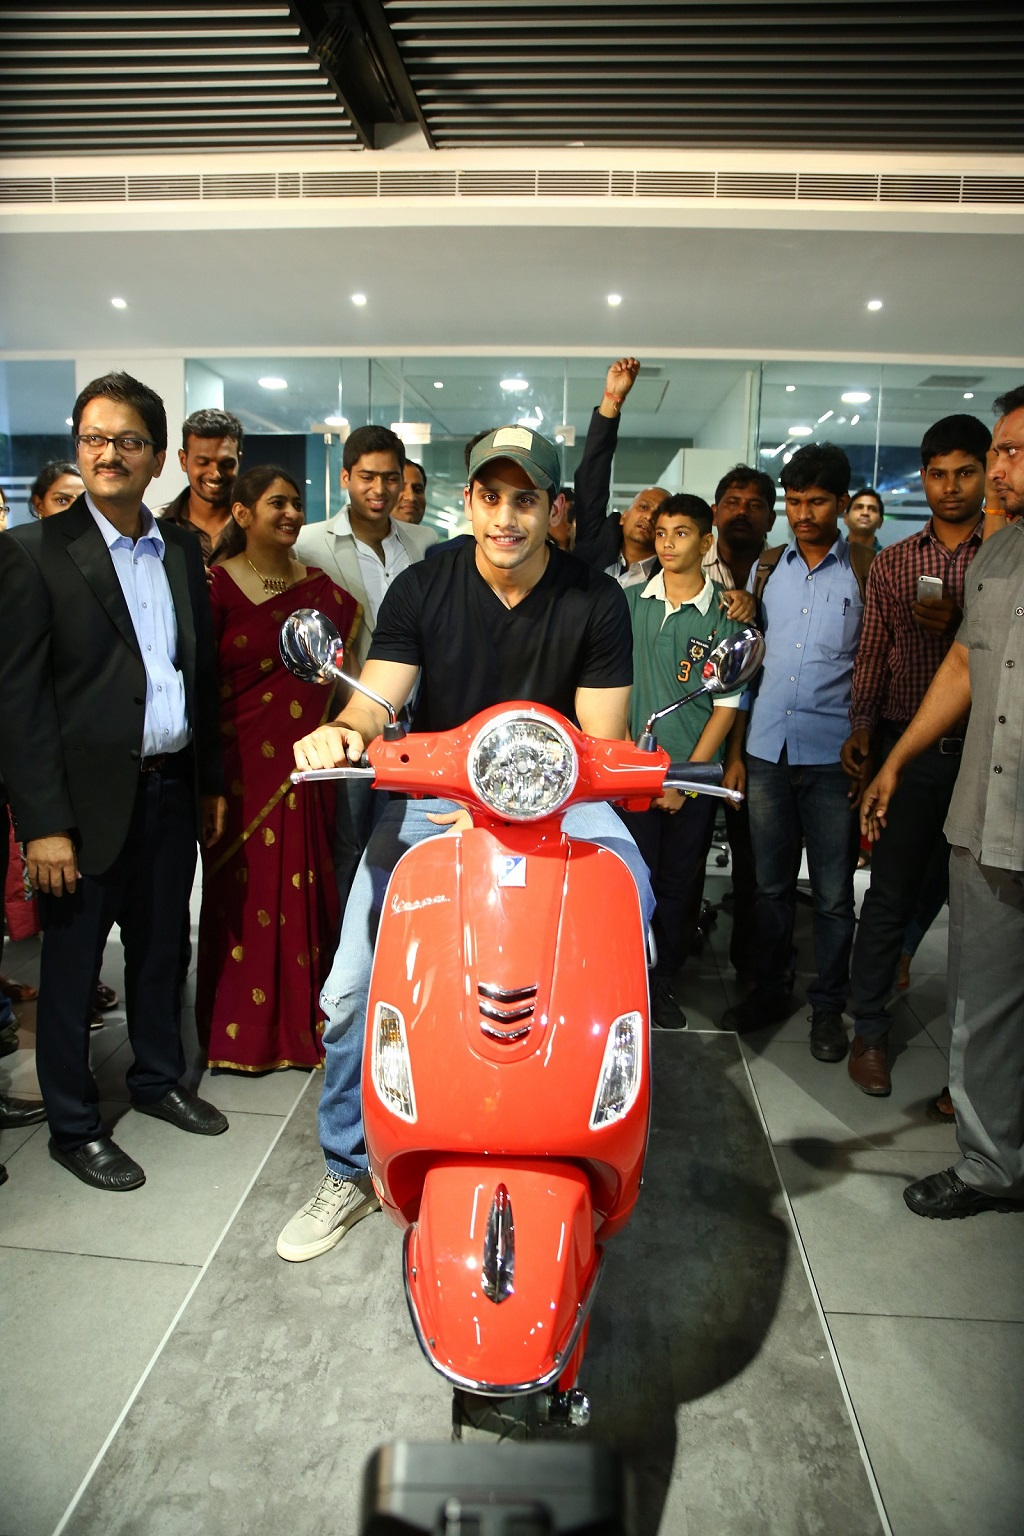 Tollywood heartthrob, Naga Chaitanya on  Red Vespa 150 SXL at the launch of Motoplex - Hyderabad